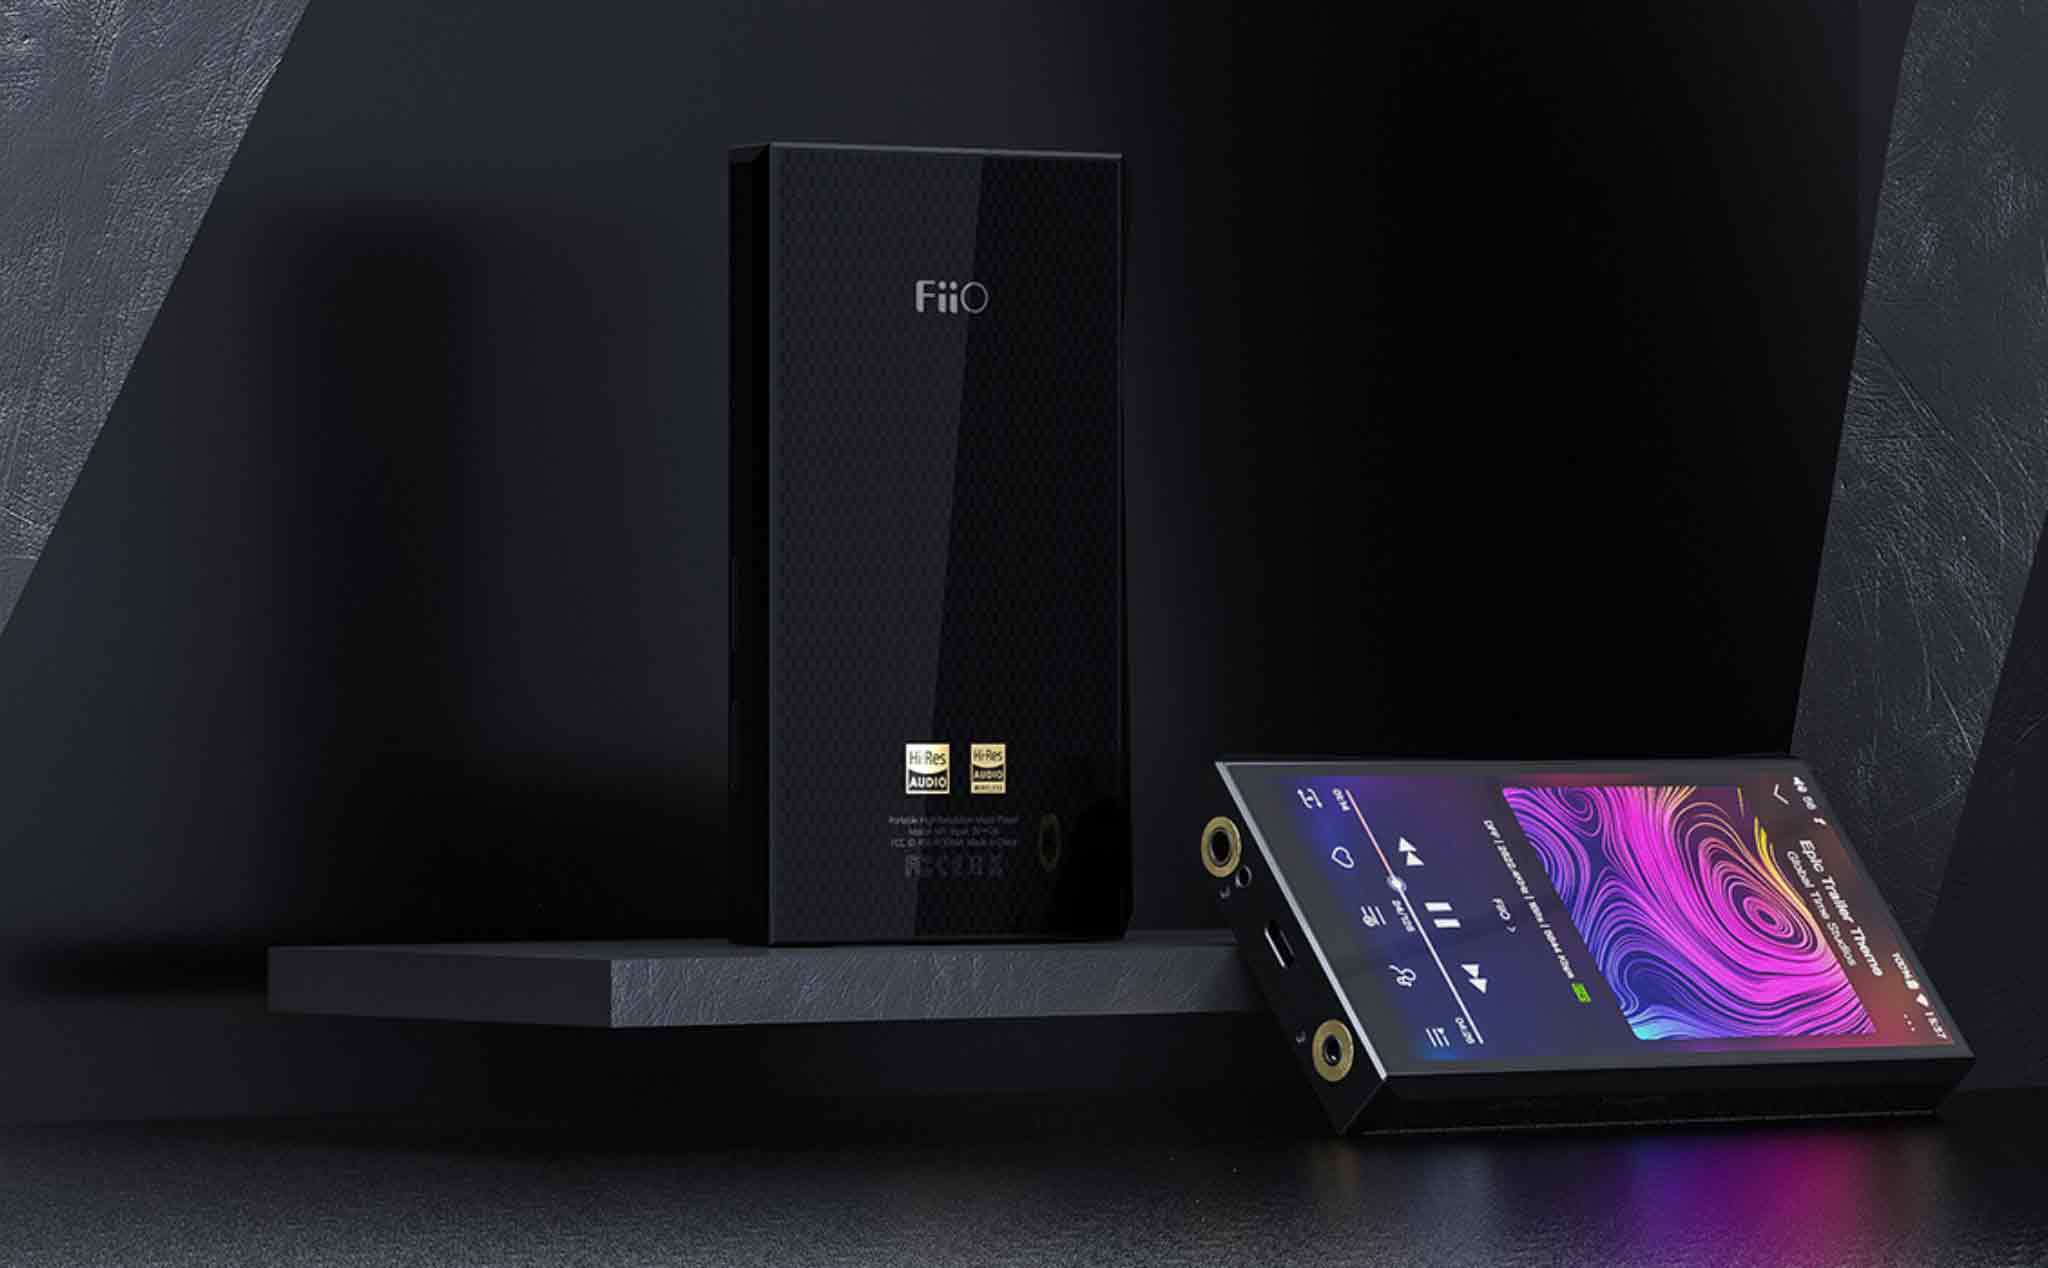 Fiio introduces M11 Pro Hi-res music player With Dual AK4497 DAC